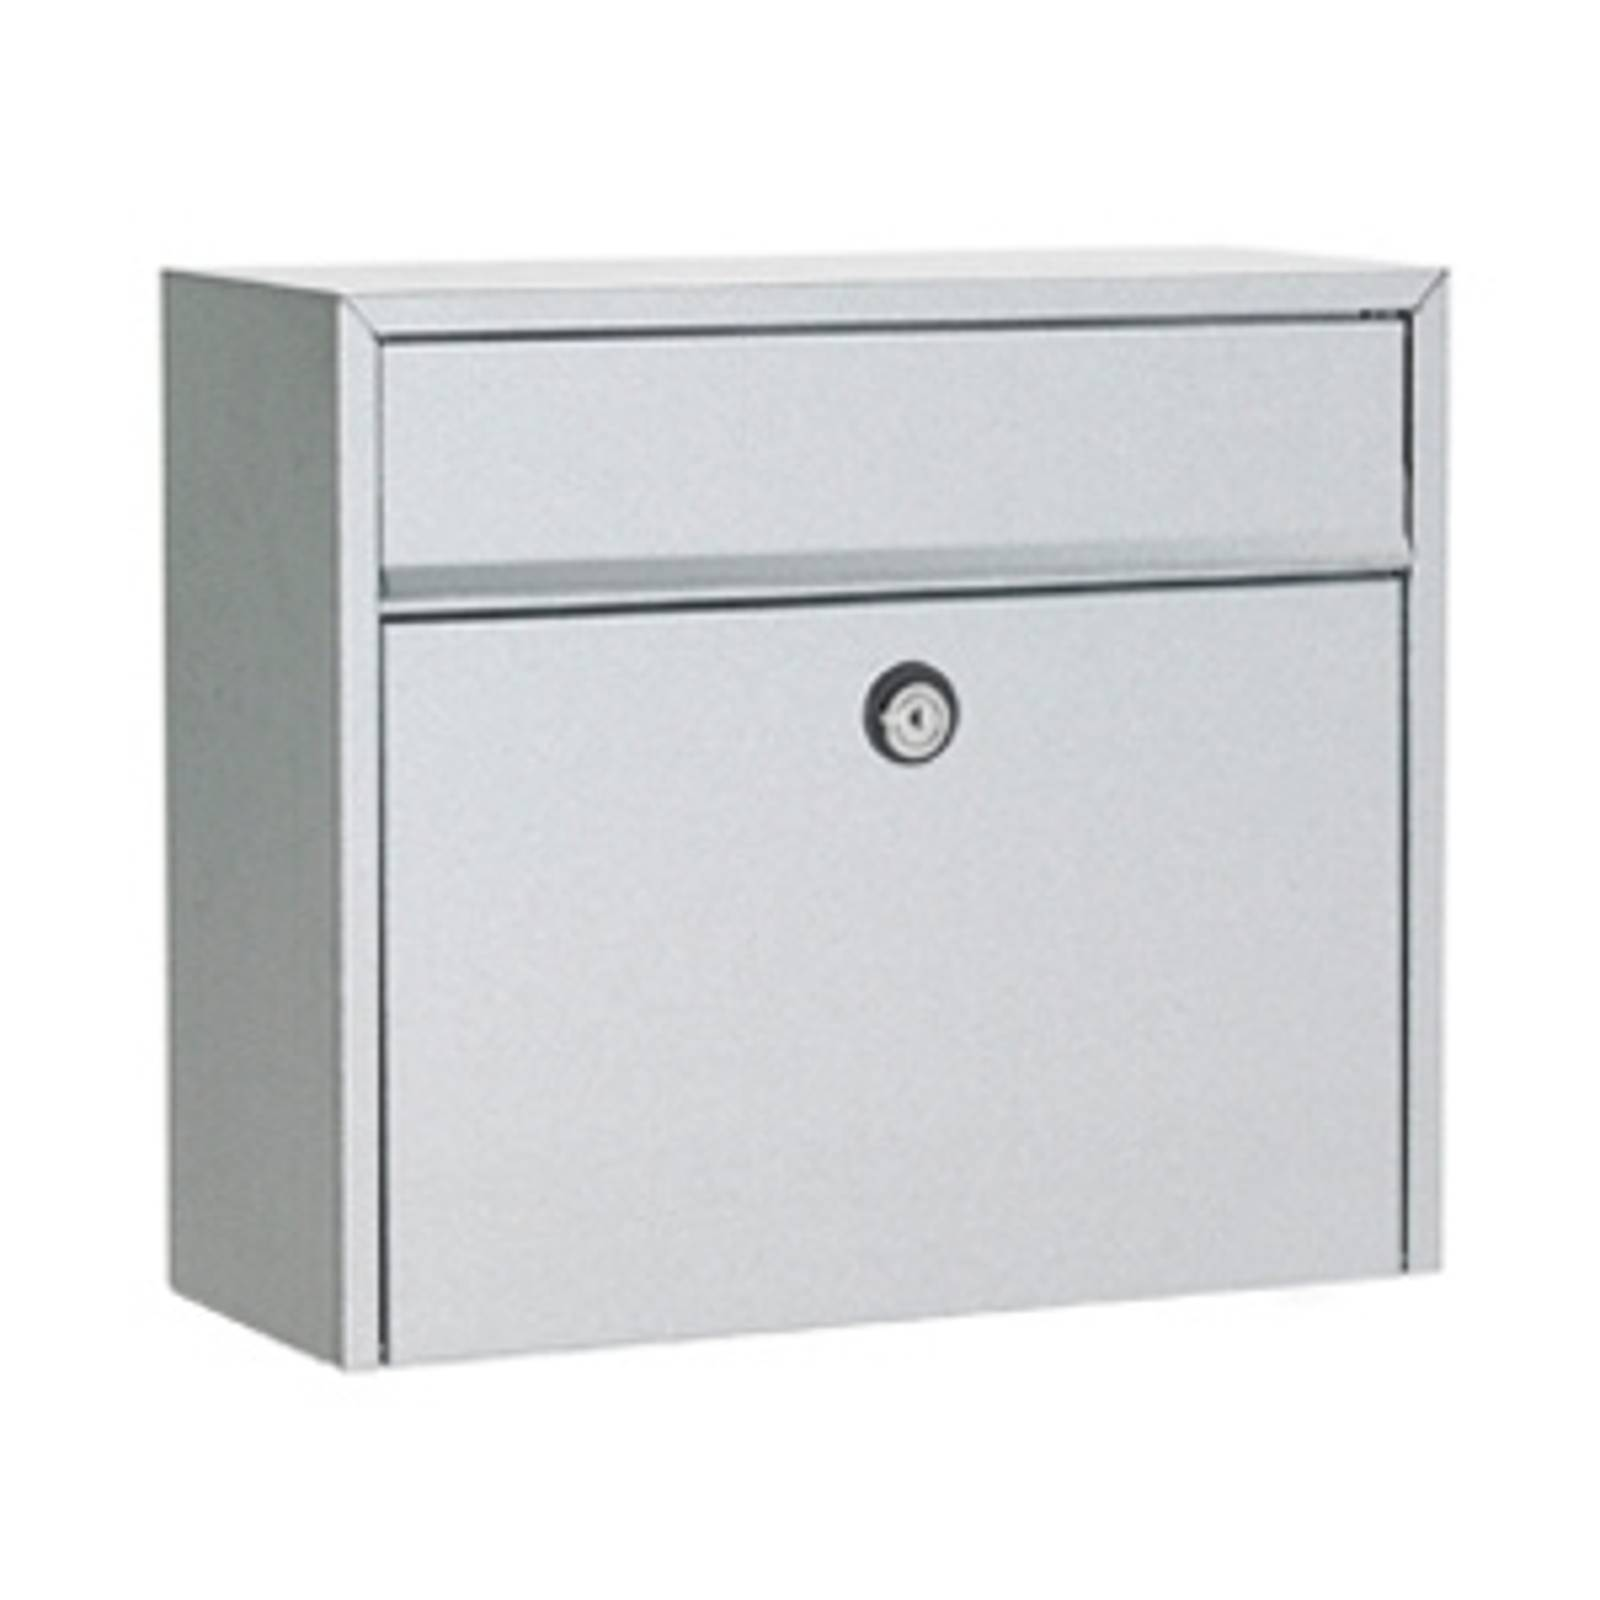 Simple letterbox LT150, steel, Euro lock from Juliana